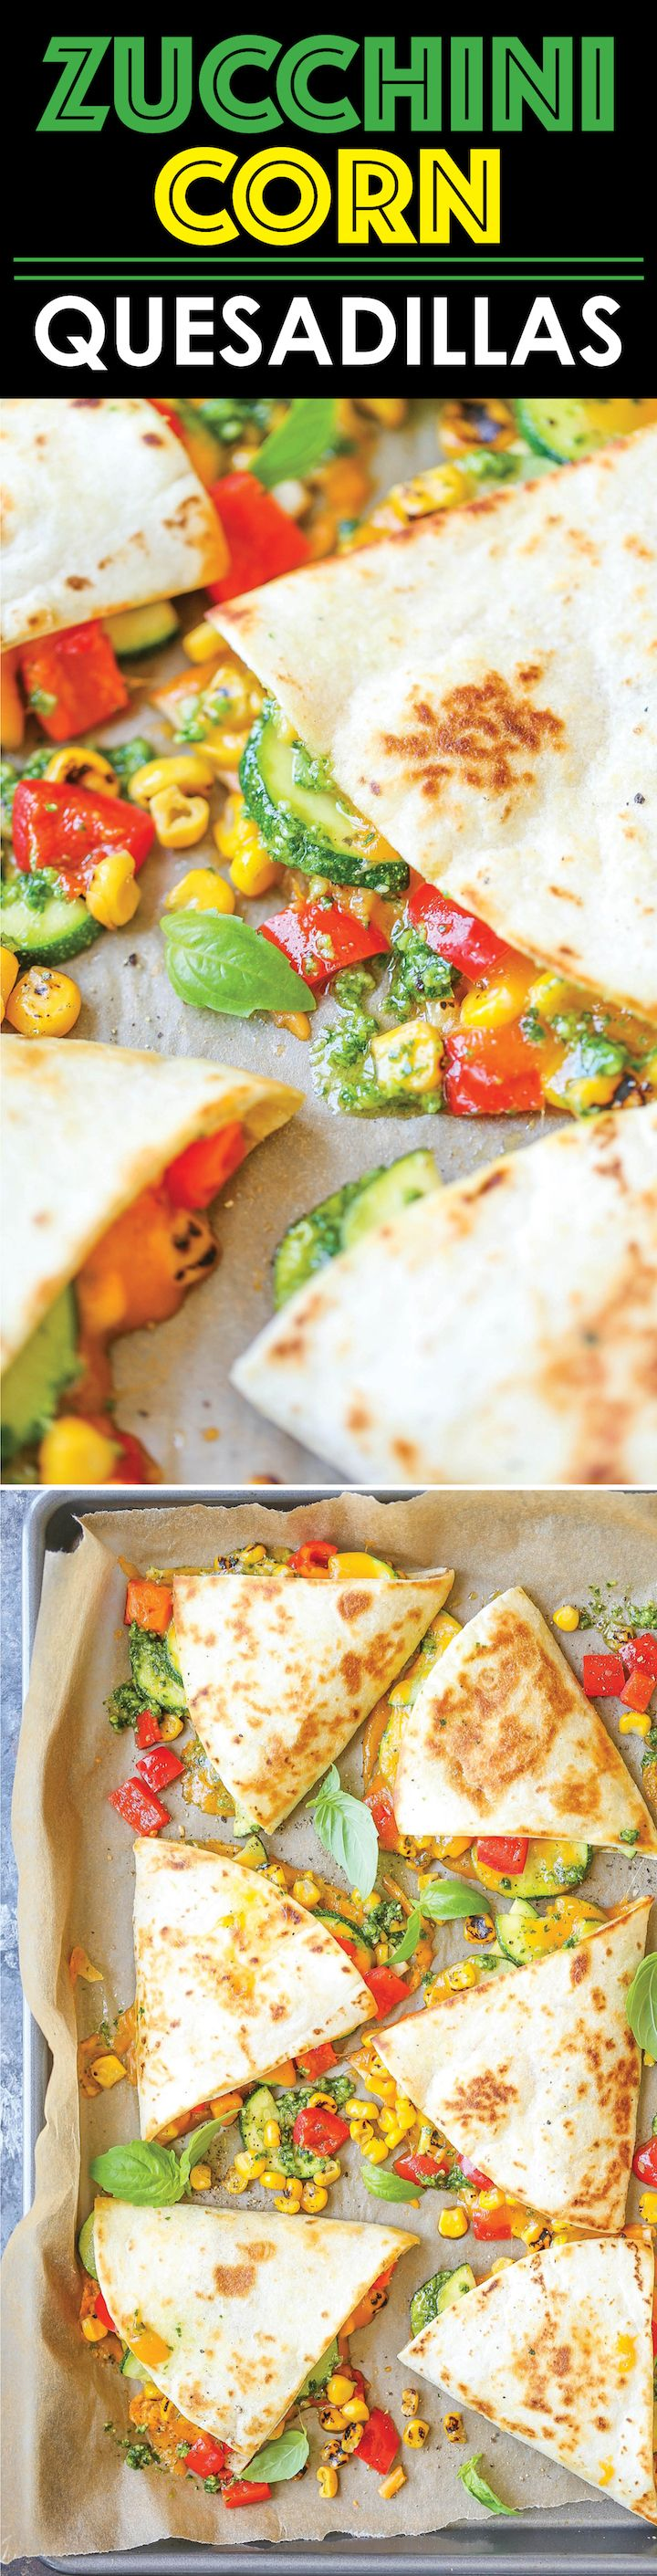 Zucchini Corn Quesadillas - This is so quick, simple and light! And with homemade (or store-bought pesto), this comes together in minutes. It's fool-proof!